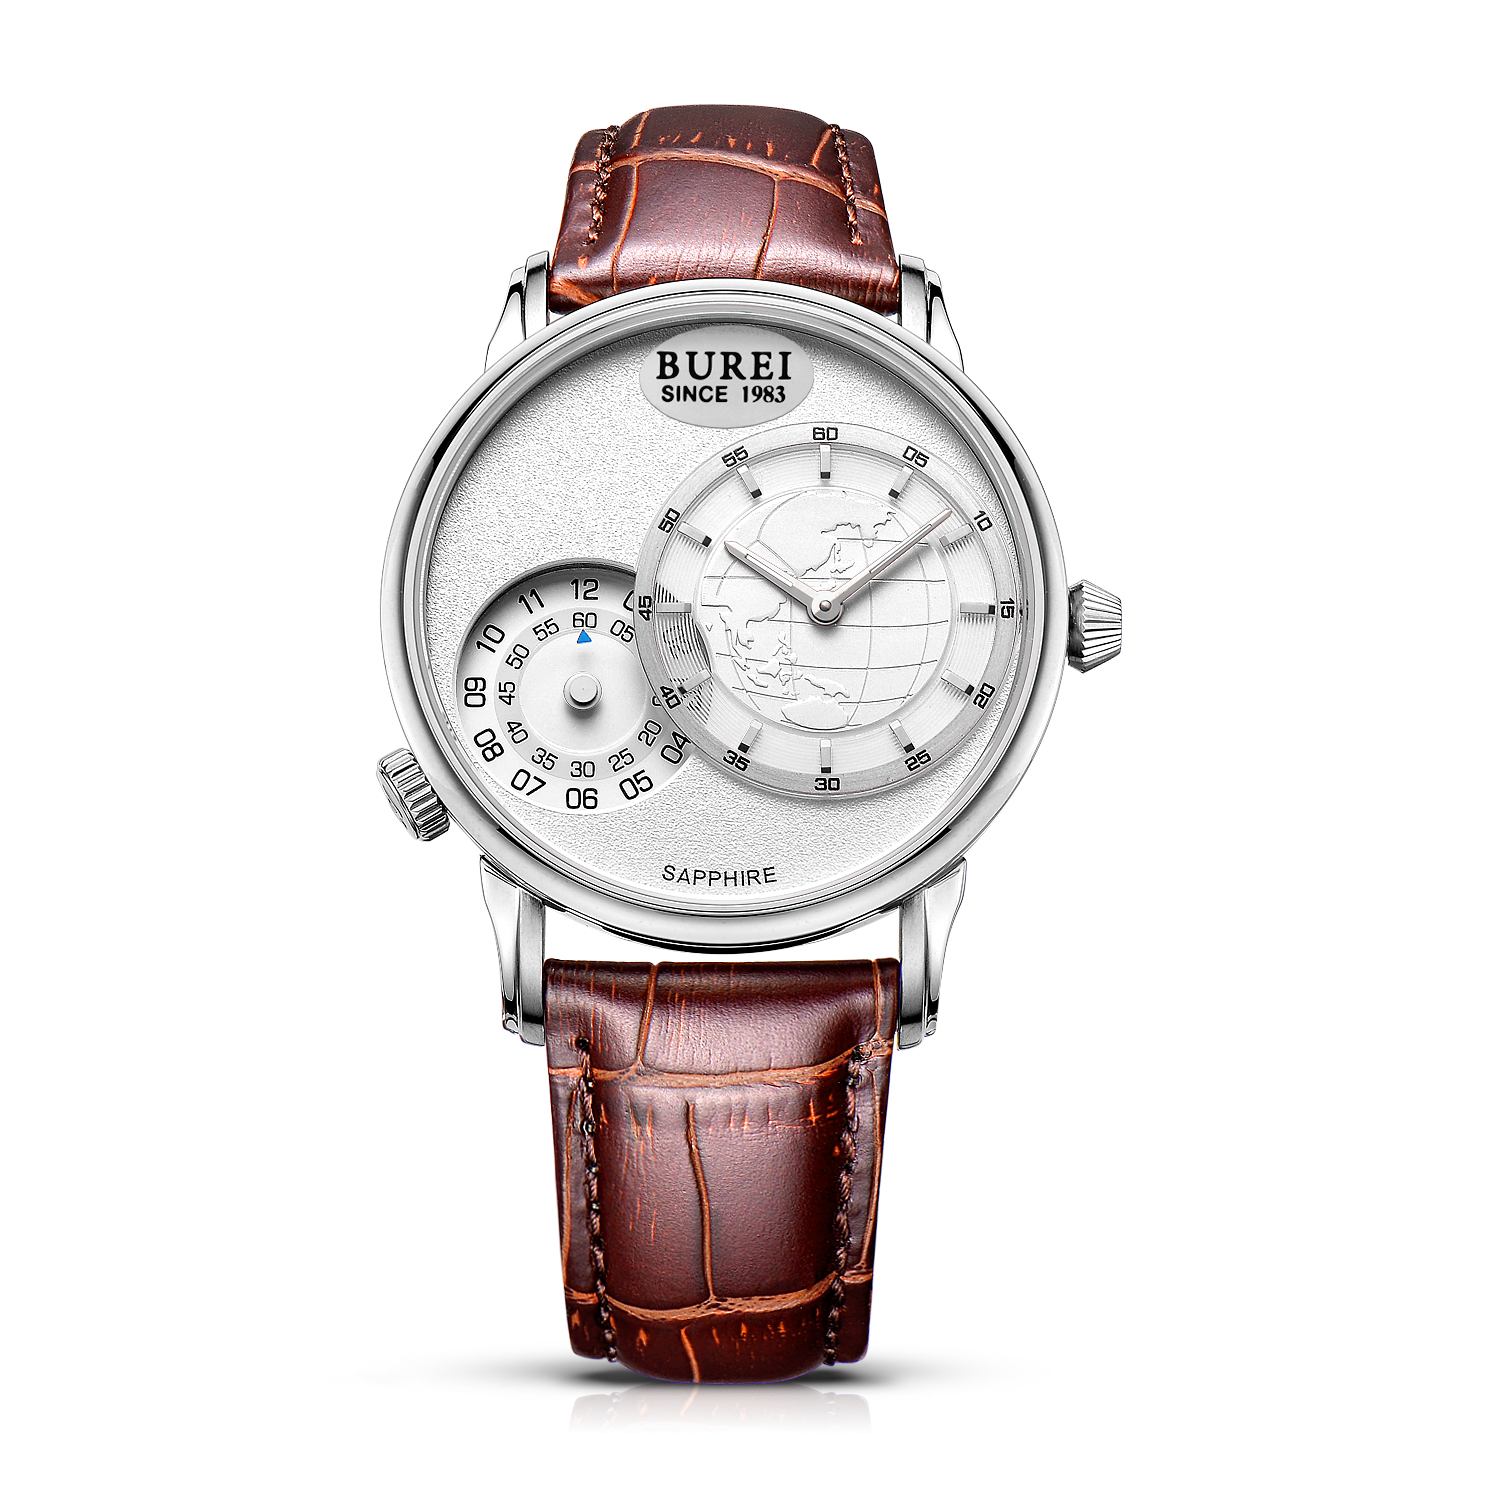 BUREI 5009 Switzerland watches men luxury brand Men's Dual Time Travel Business Casual Watches White Dial Brown Leather Strap pure white dial face ziz time watches navy